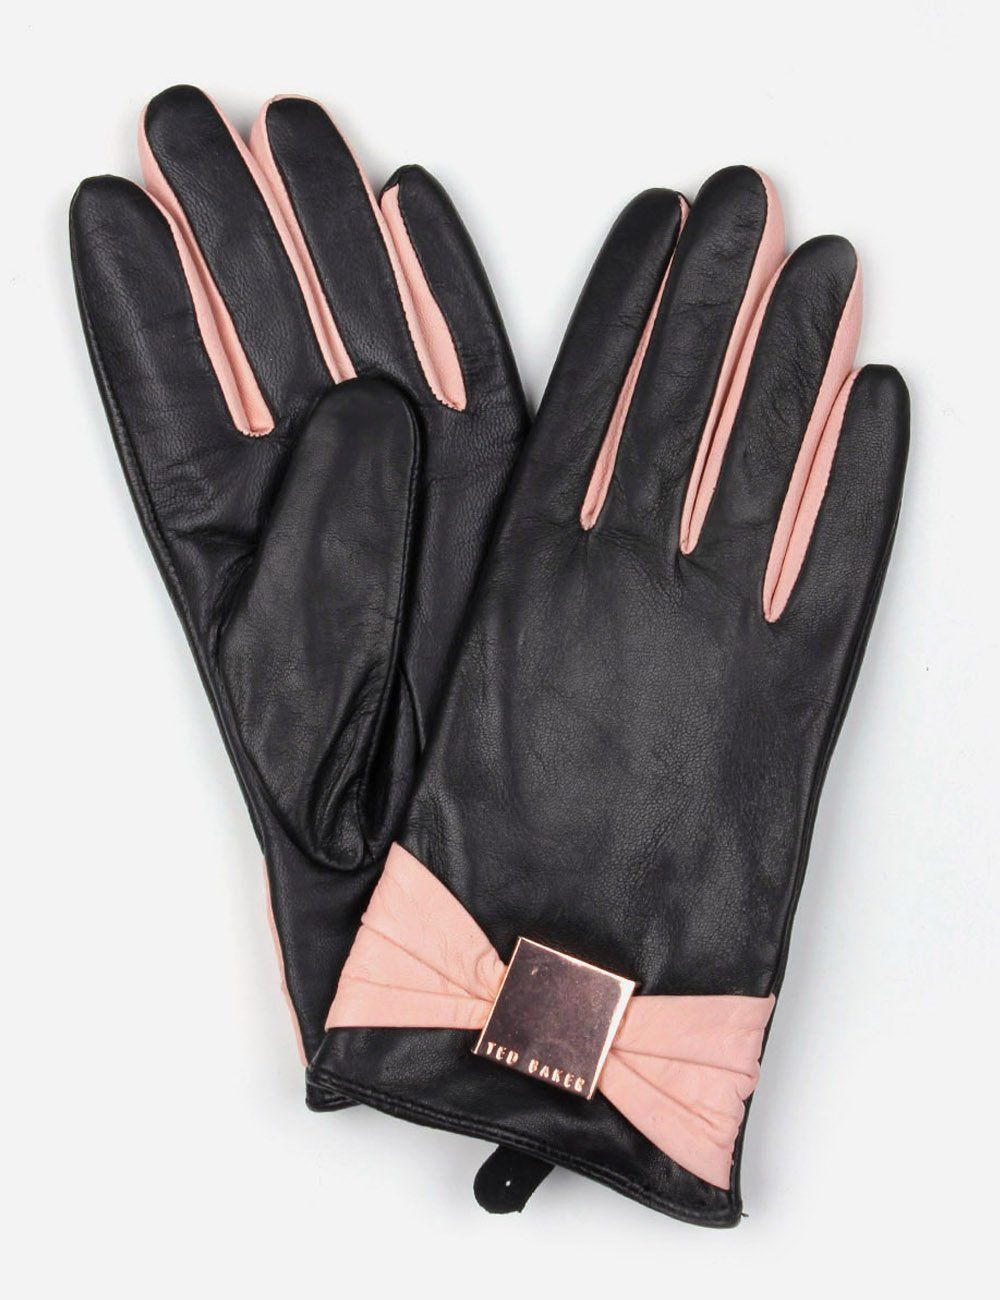 Ladies coloured leather gloves - Leather Gloves For Women View All Ted Baker View All Accessories View All